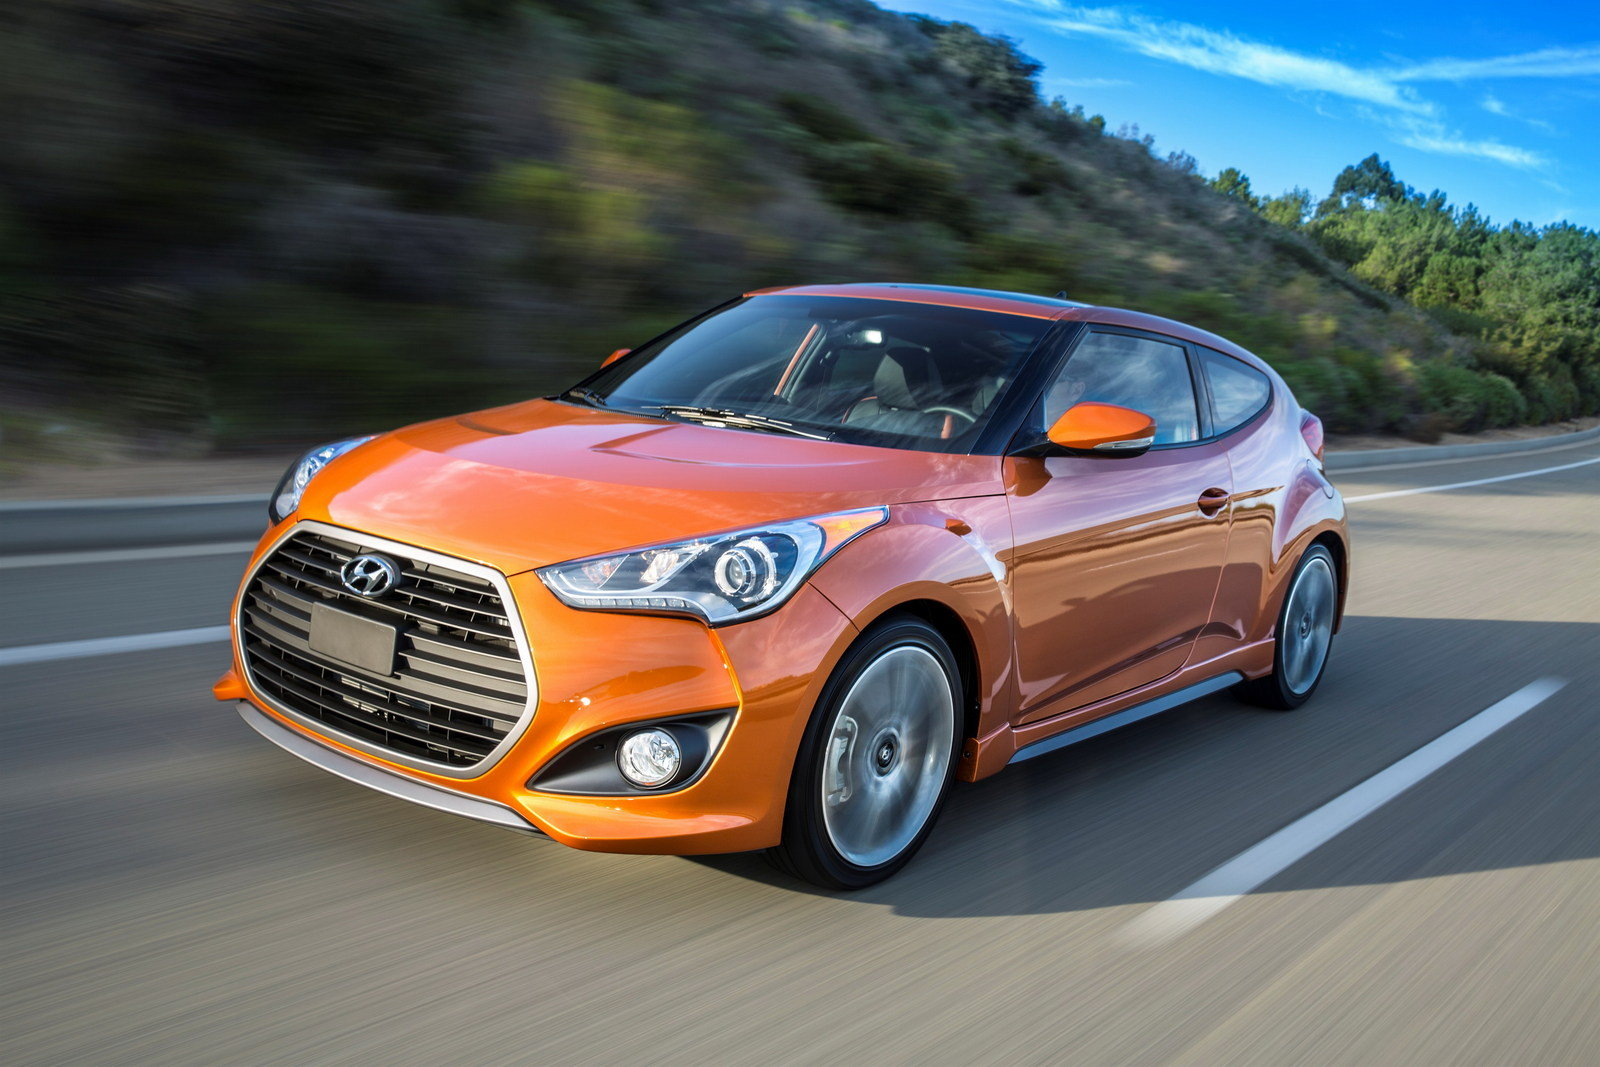 2016 hyundai veloster turbo picture 617107 car review top speed. Black Bedroom Furniture Sets. Home Design Ideas